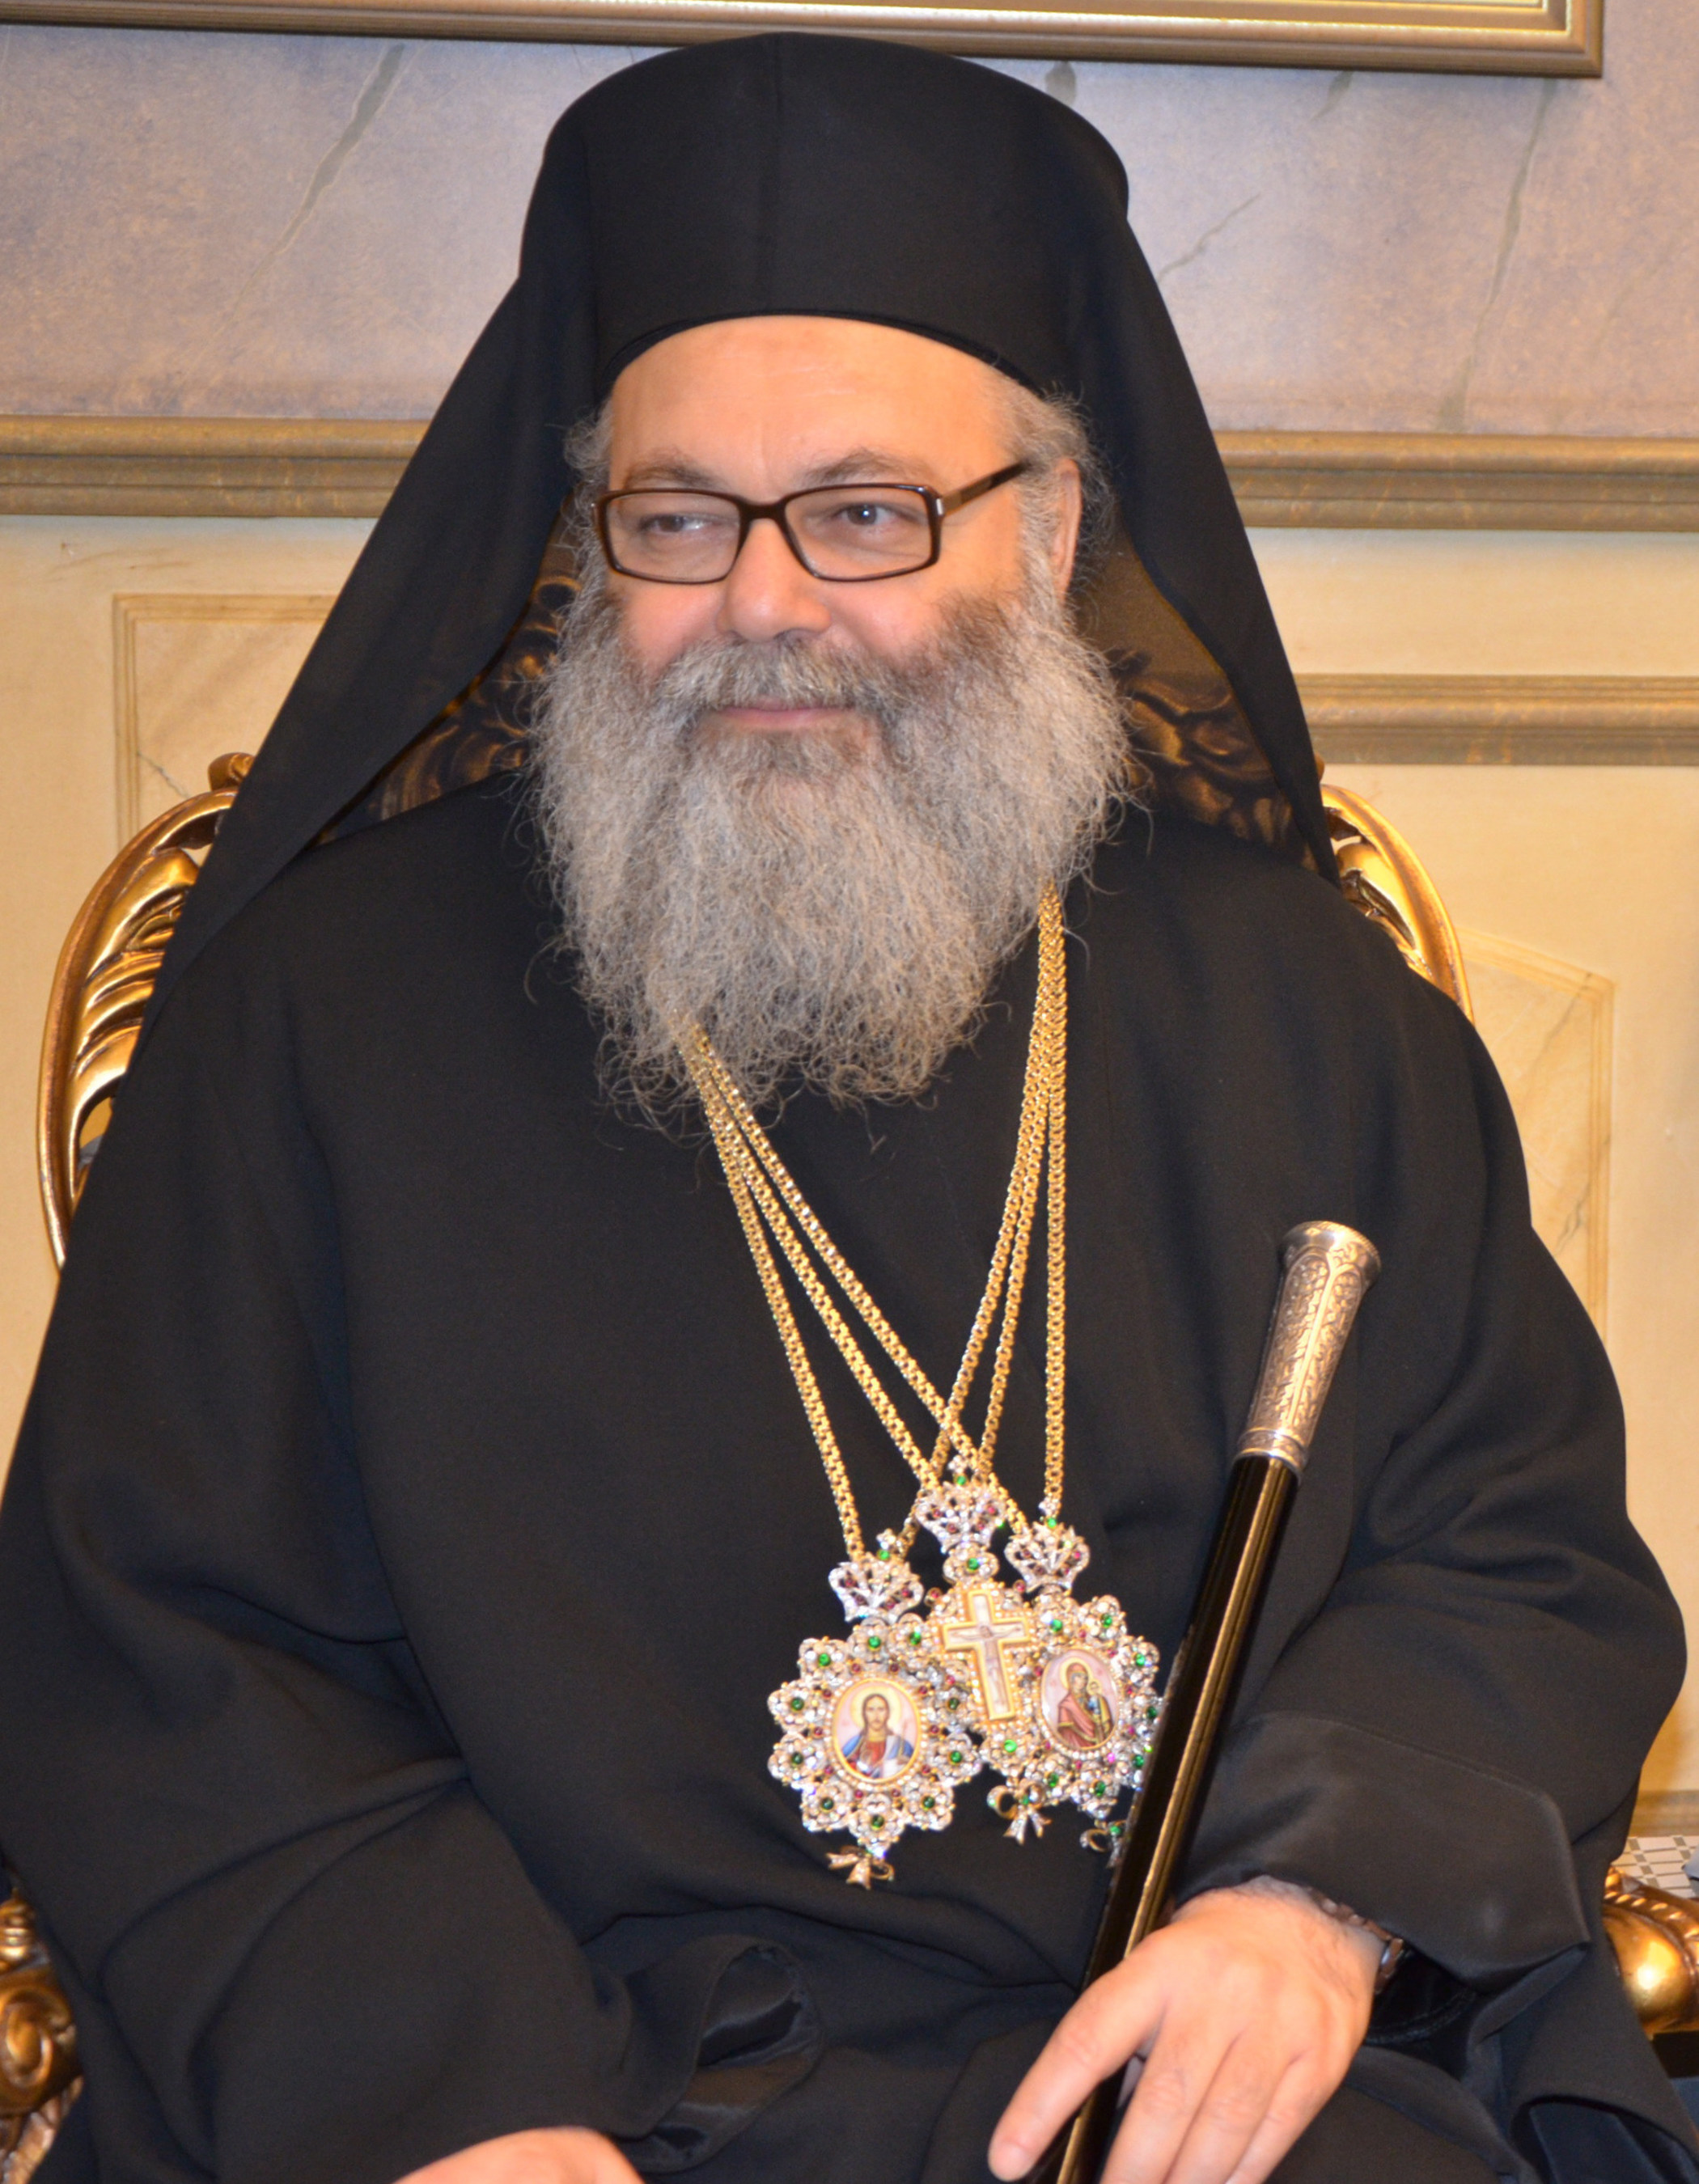 His Beatitude Patriarch John X, Patriarch of Antioch & all the East